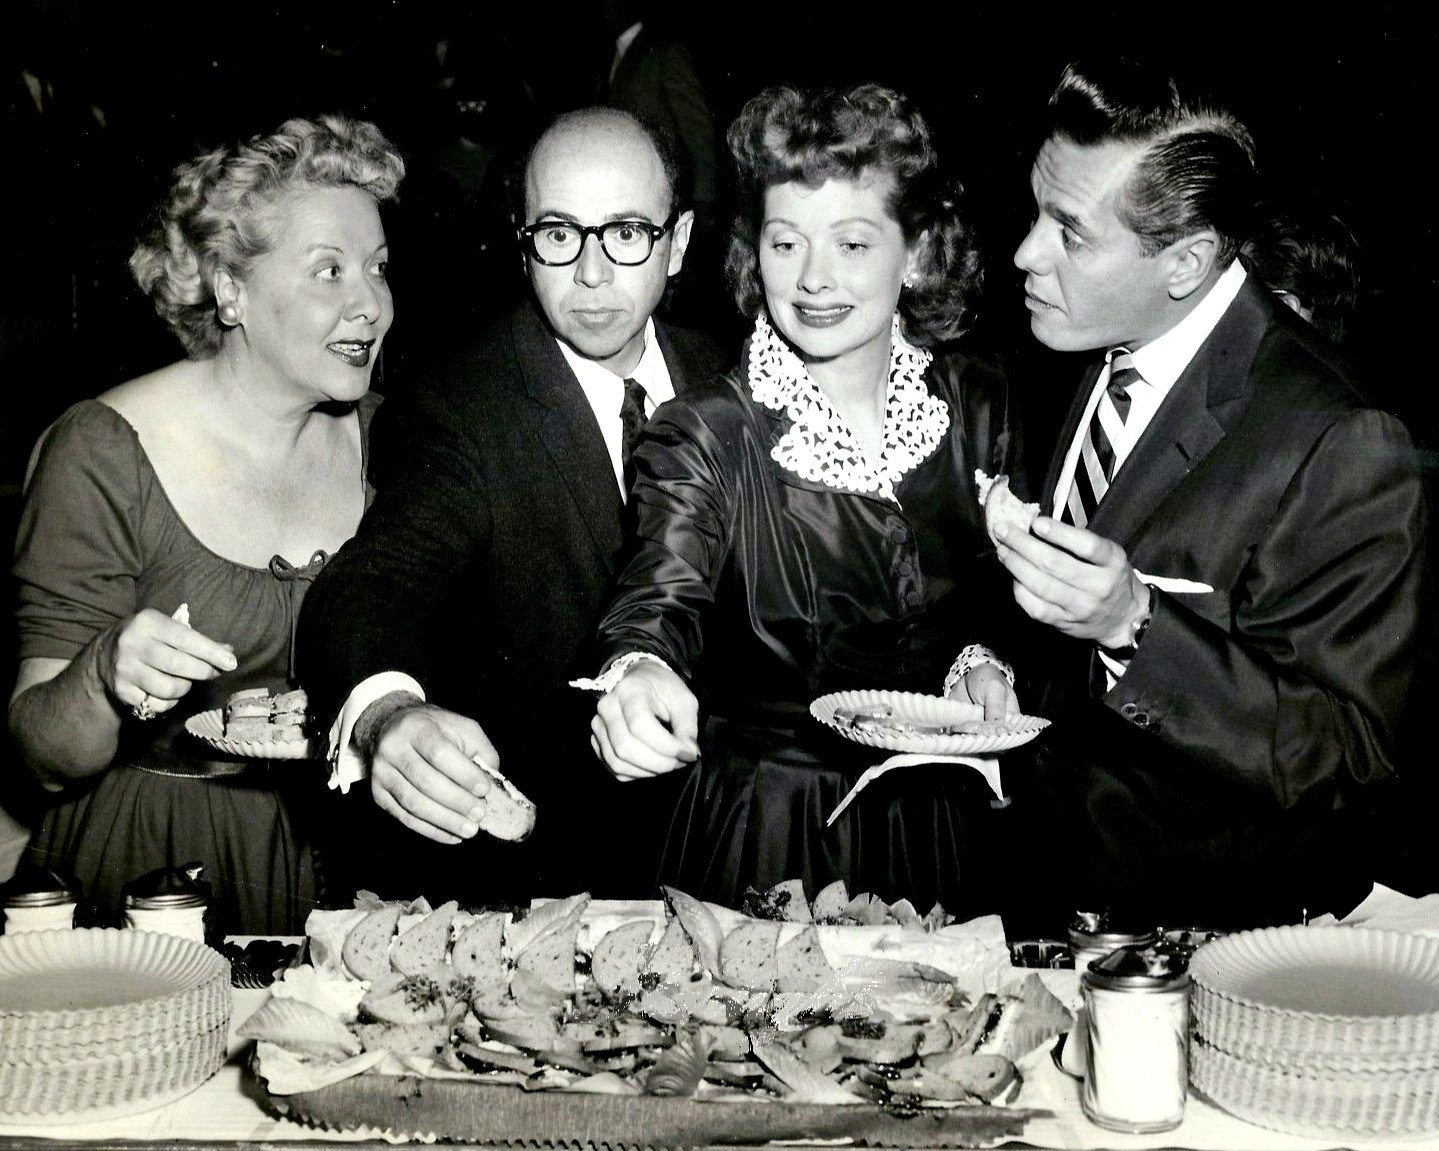 'I LOVE LUCY' CBS TV SHOW 1955 PRESS PARTY - 8X10 PUBLICITY PHOTO (DD-089)